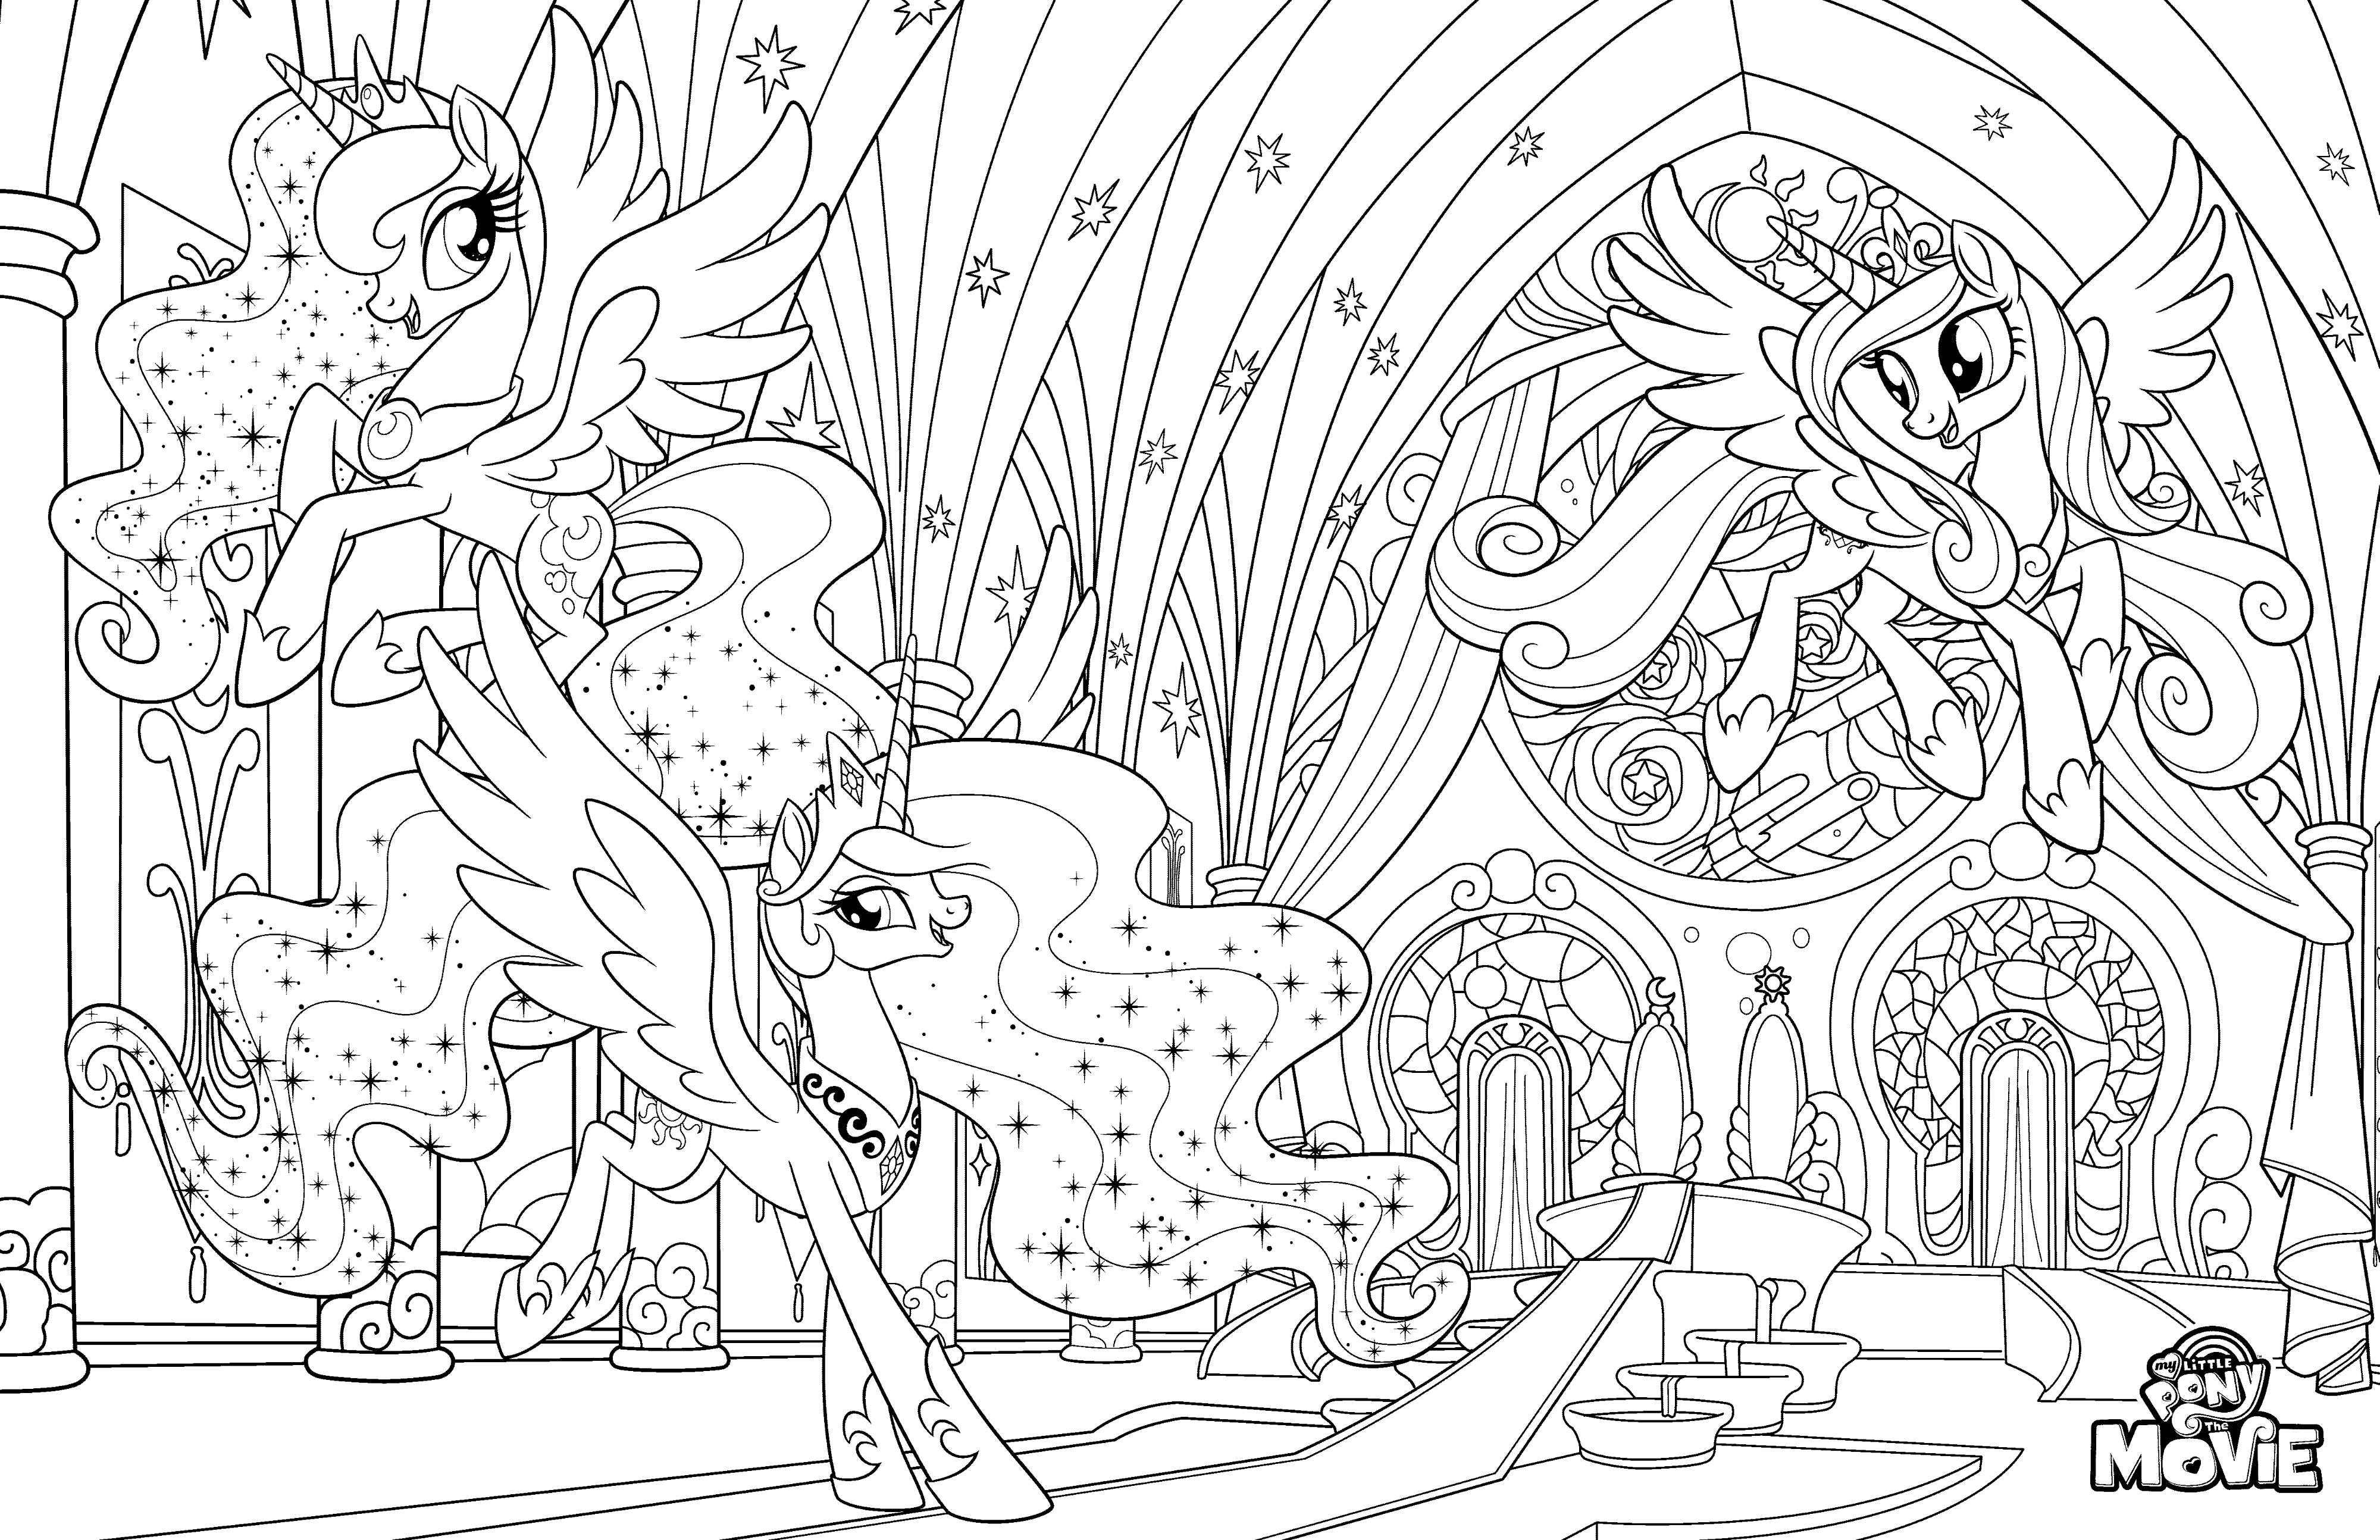 mlp color pages my little pony mermaid coloring pages vingel pages color mlp